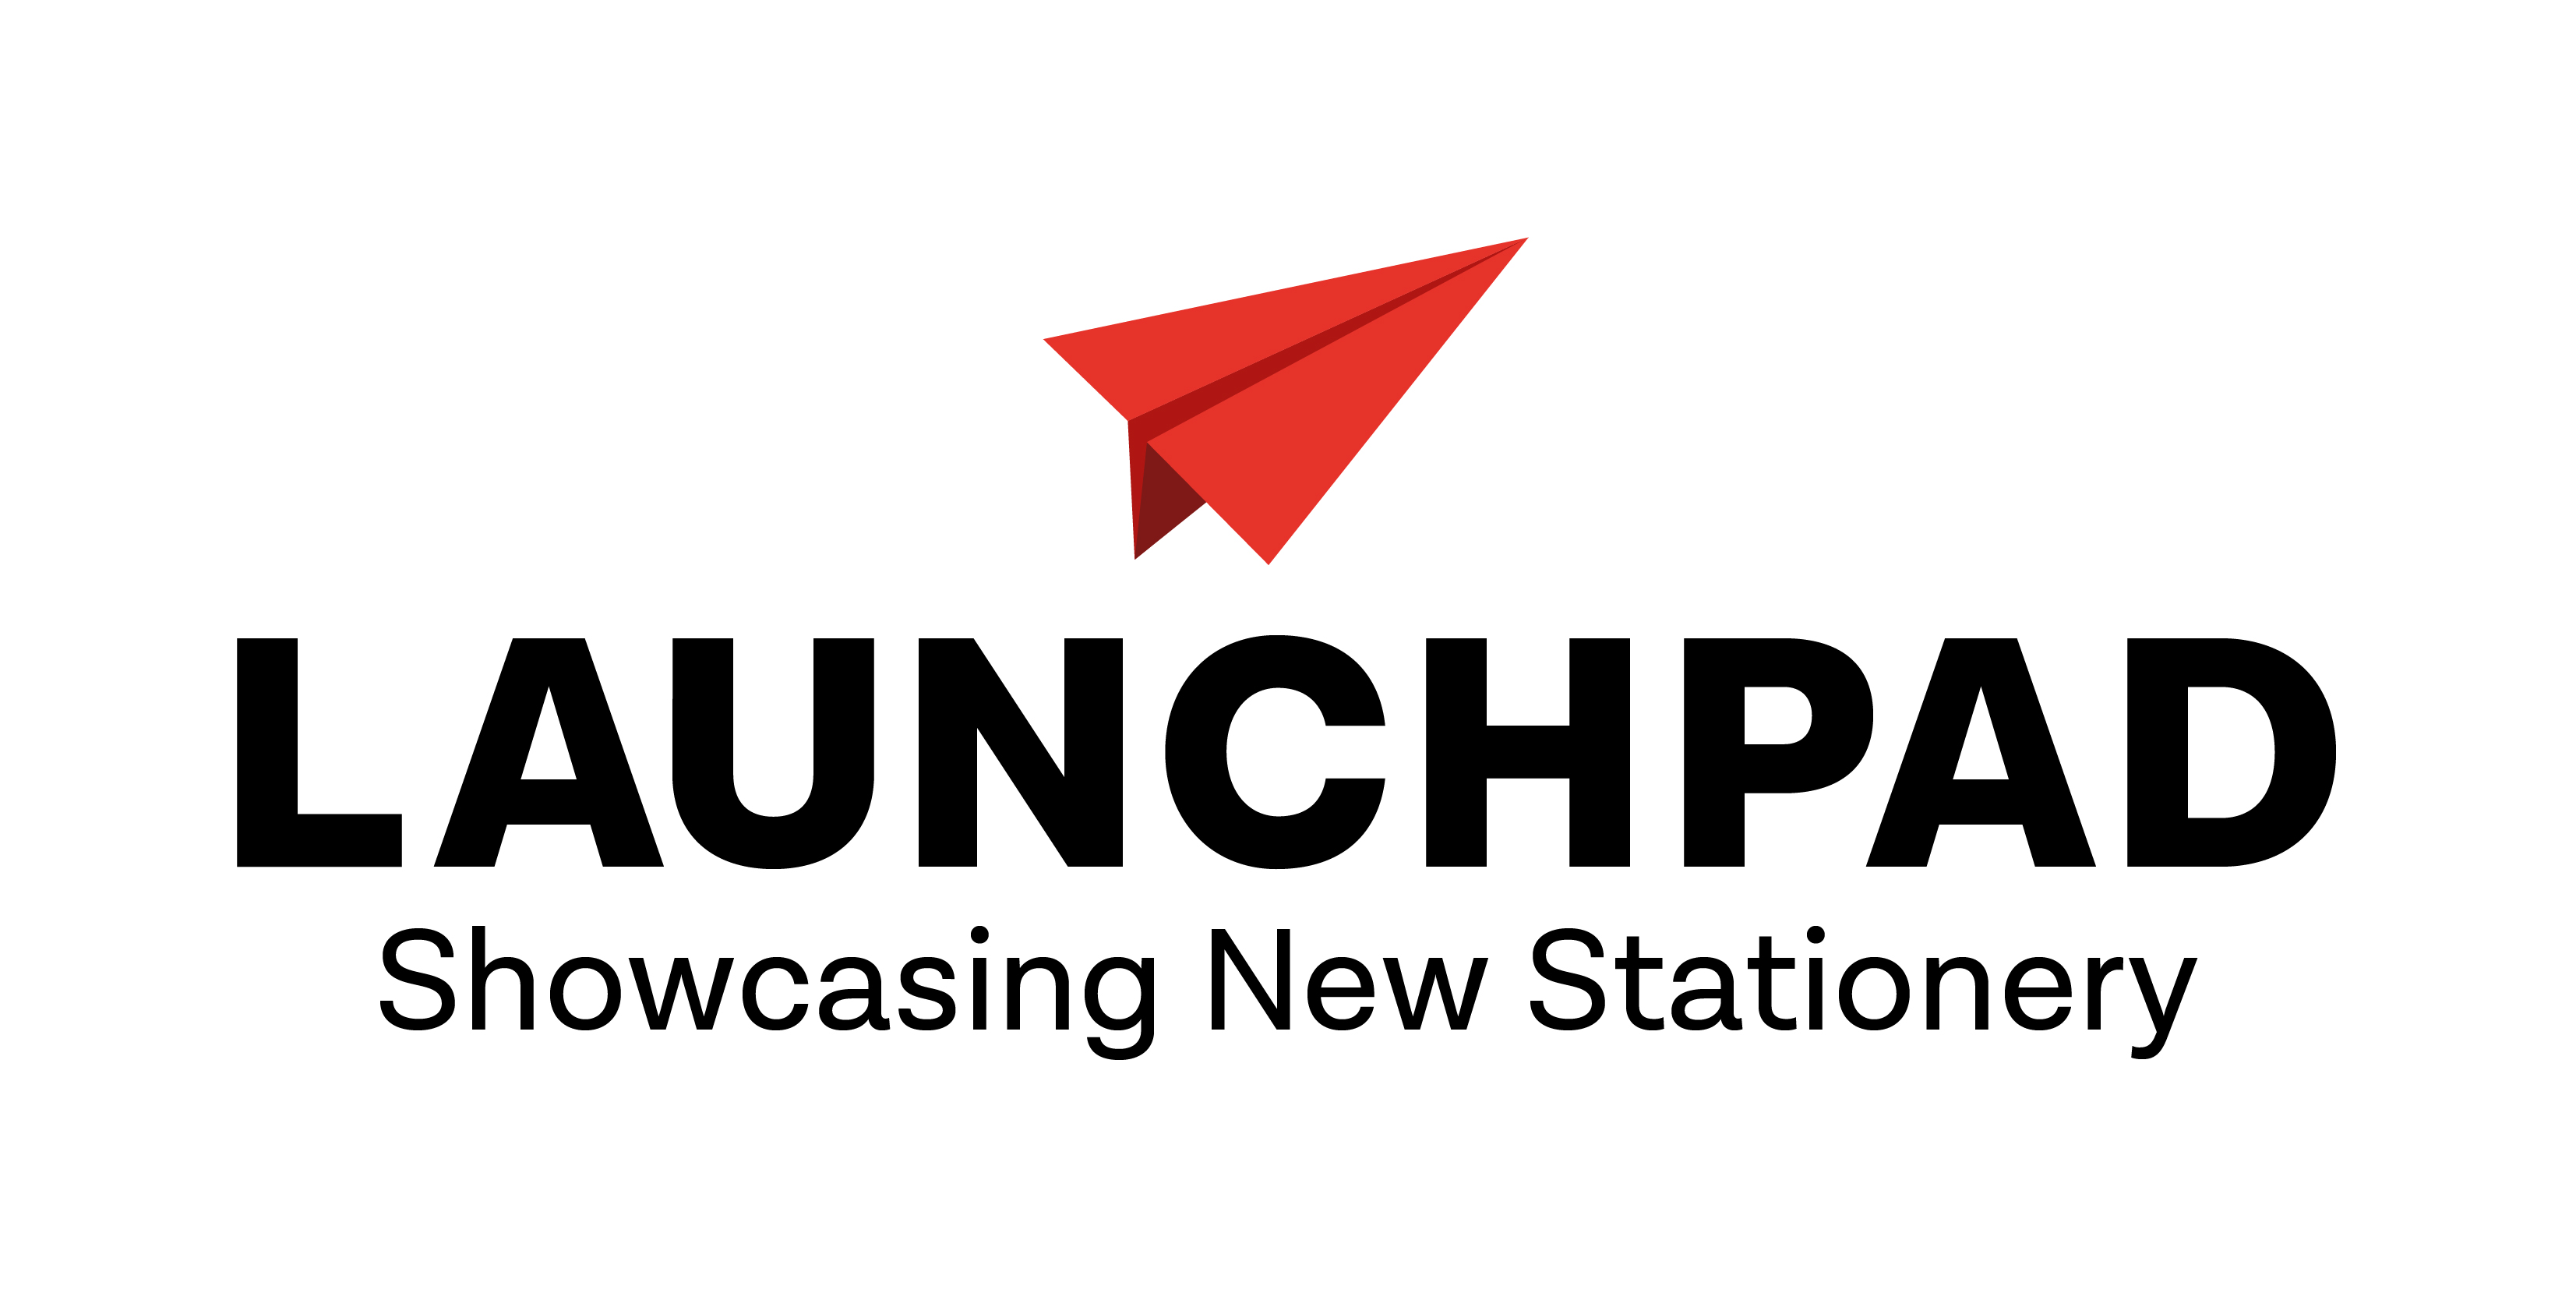 WINNERS REVEALED FOR LAUNCHPAD 2020